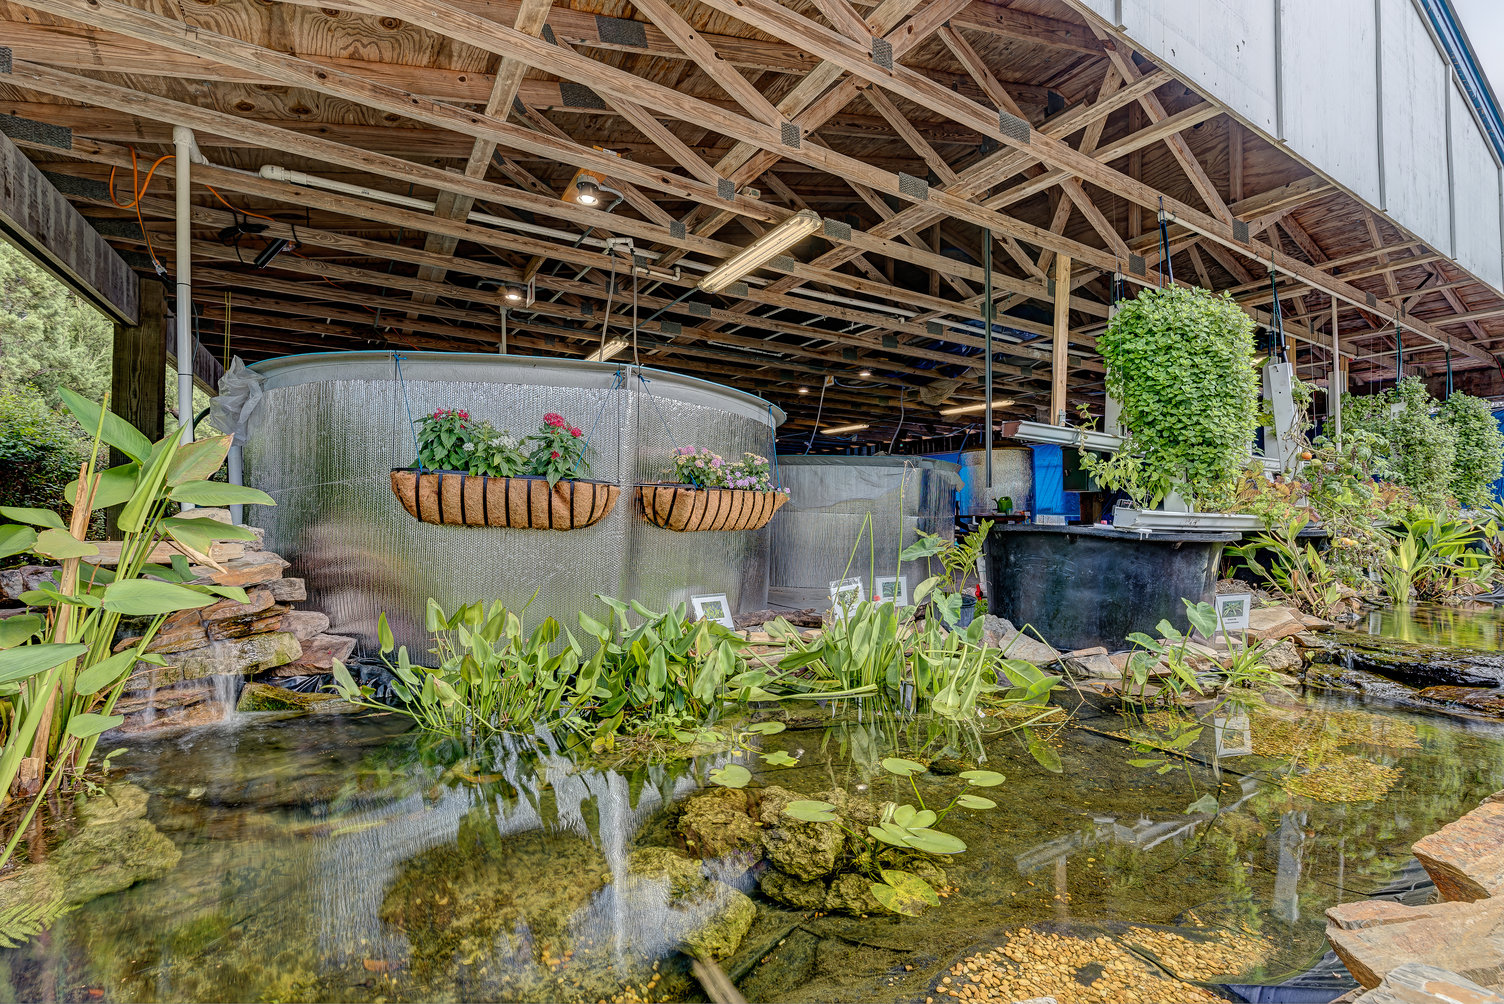 koi pond with reflection off of water, tanks with fish in the rear of the image